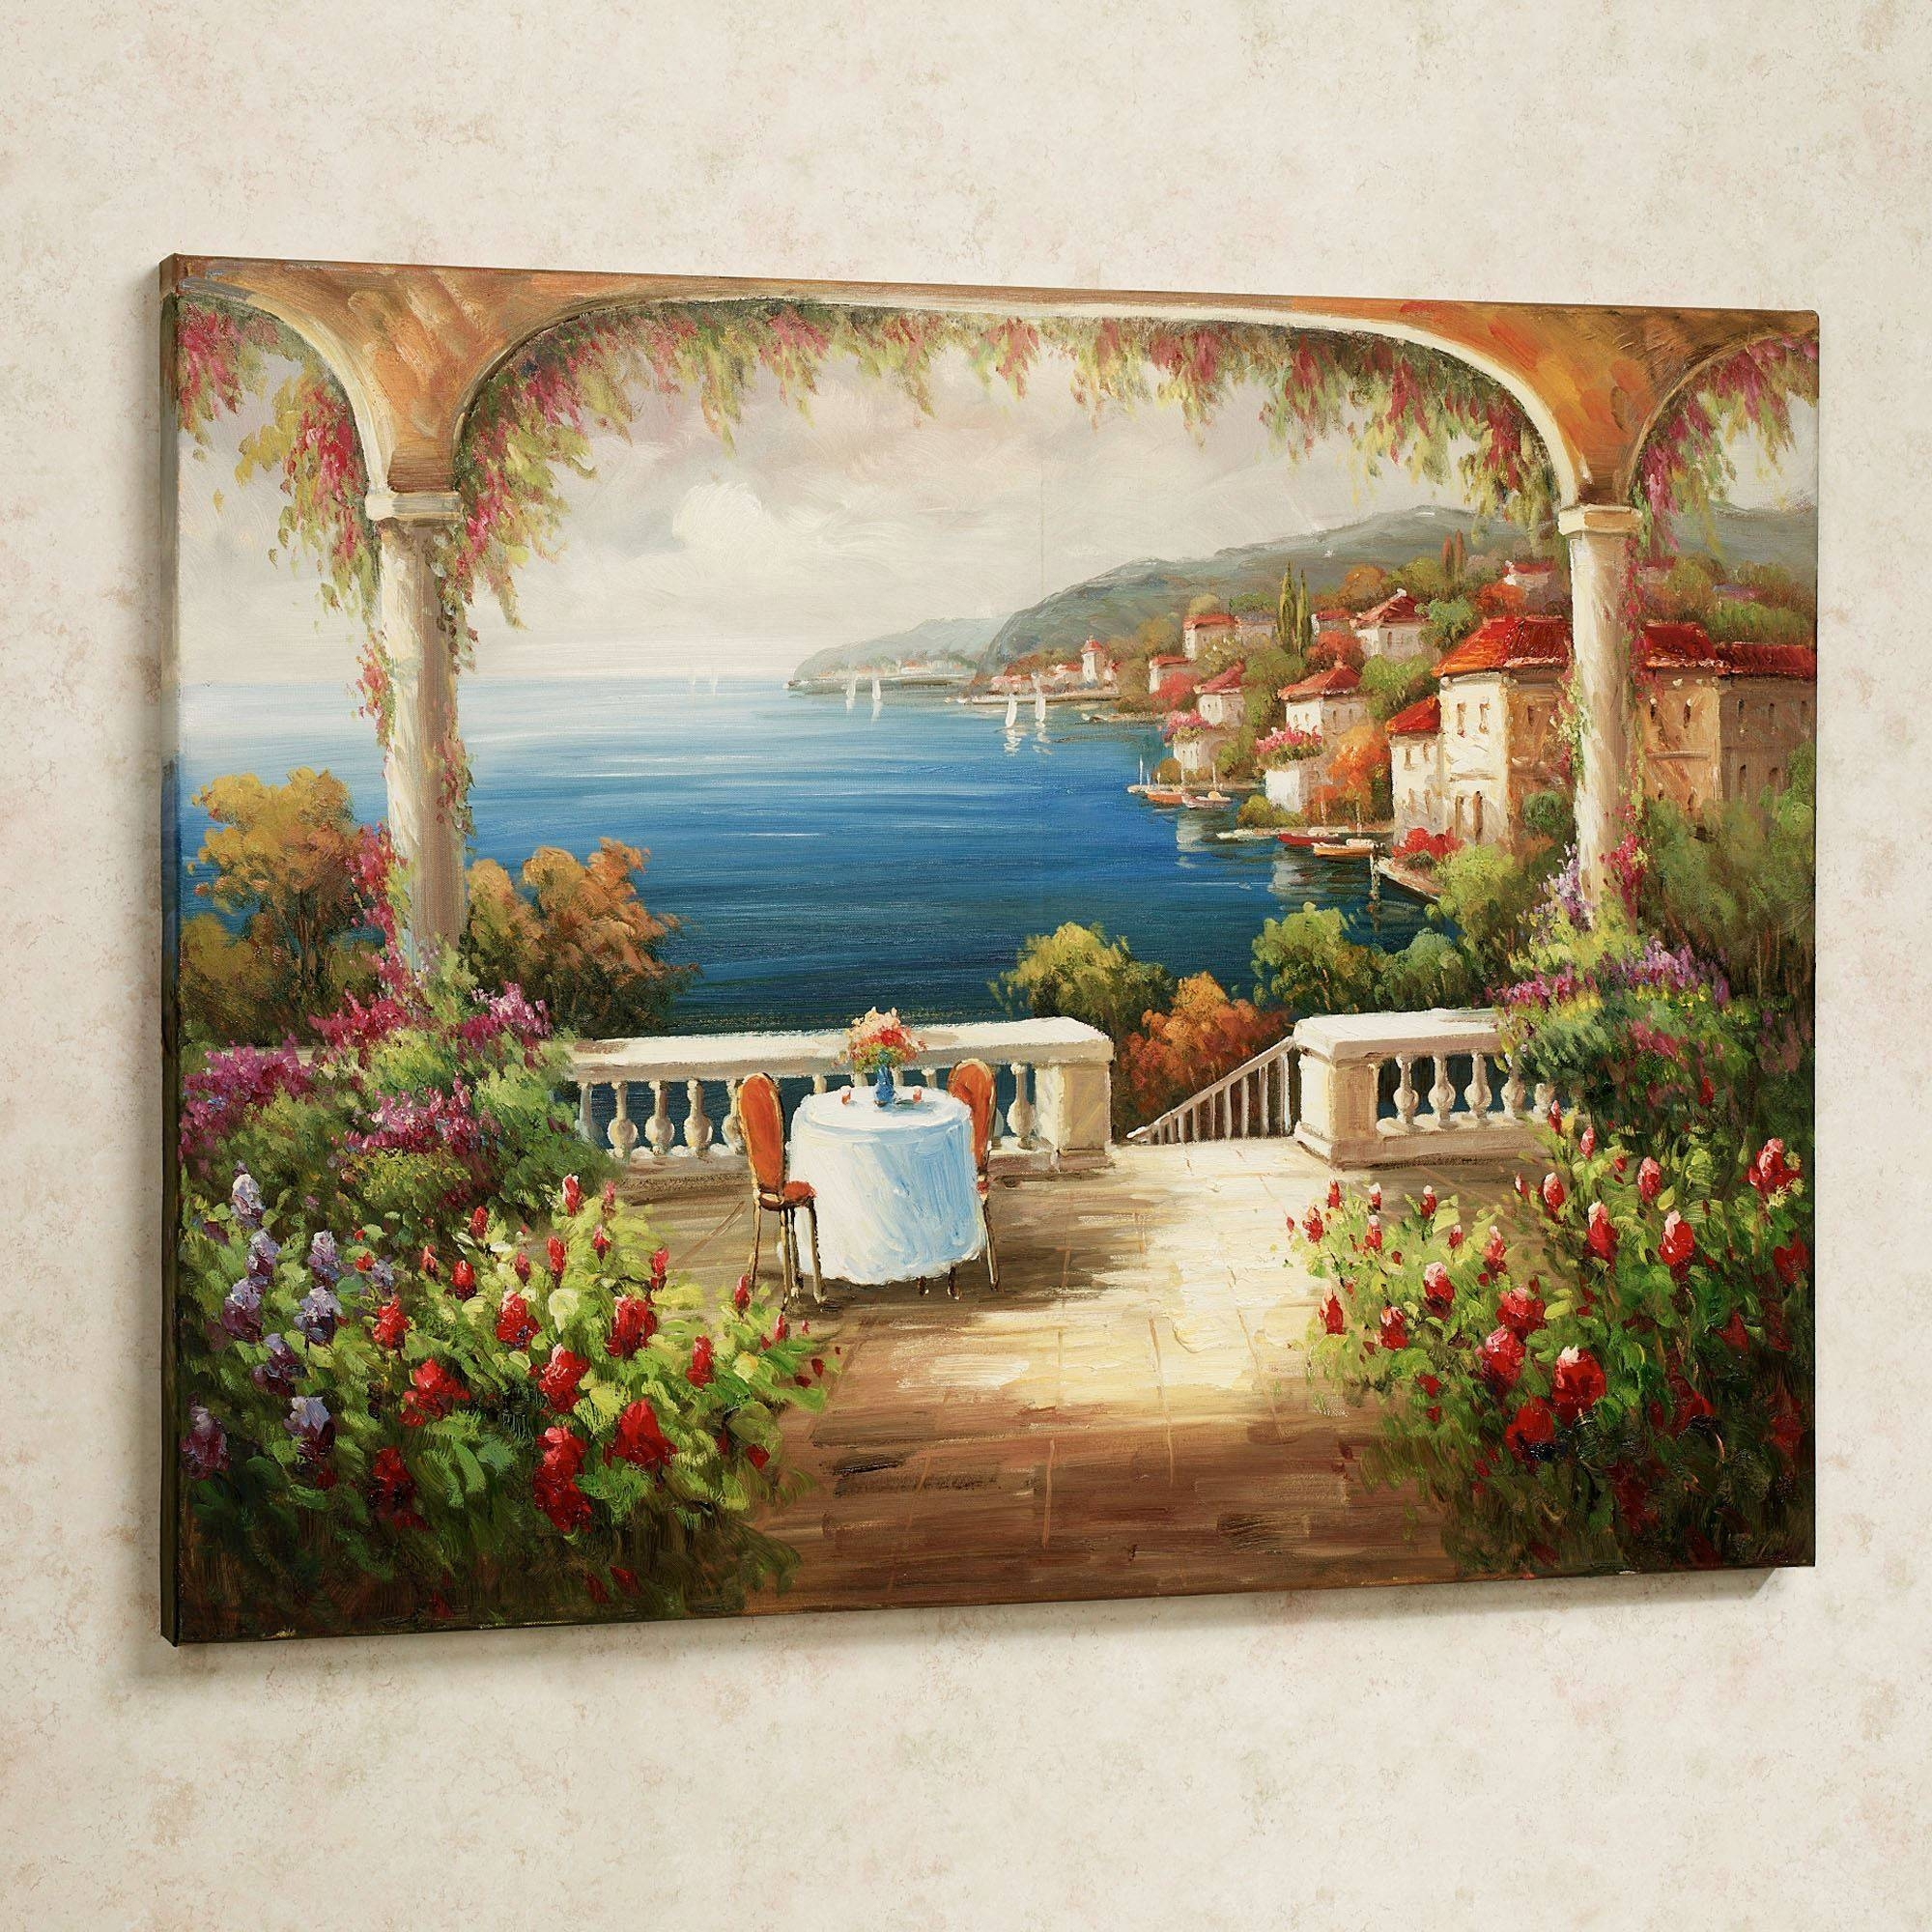 Image Gallery of Italian Wall Art Decor View 13 of 30 s